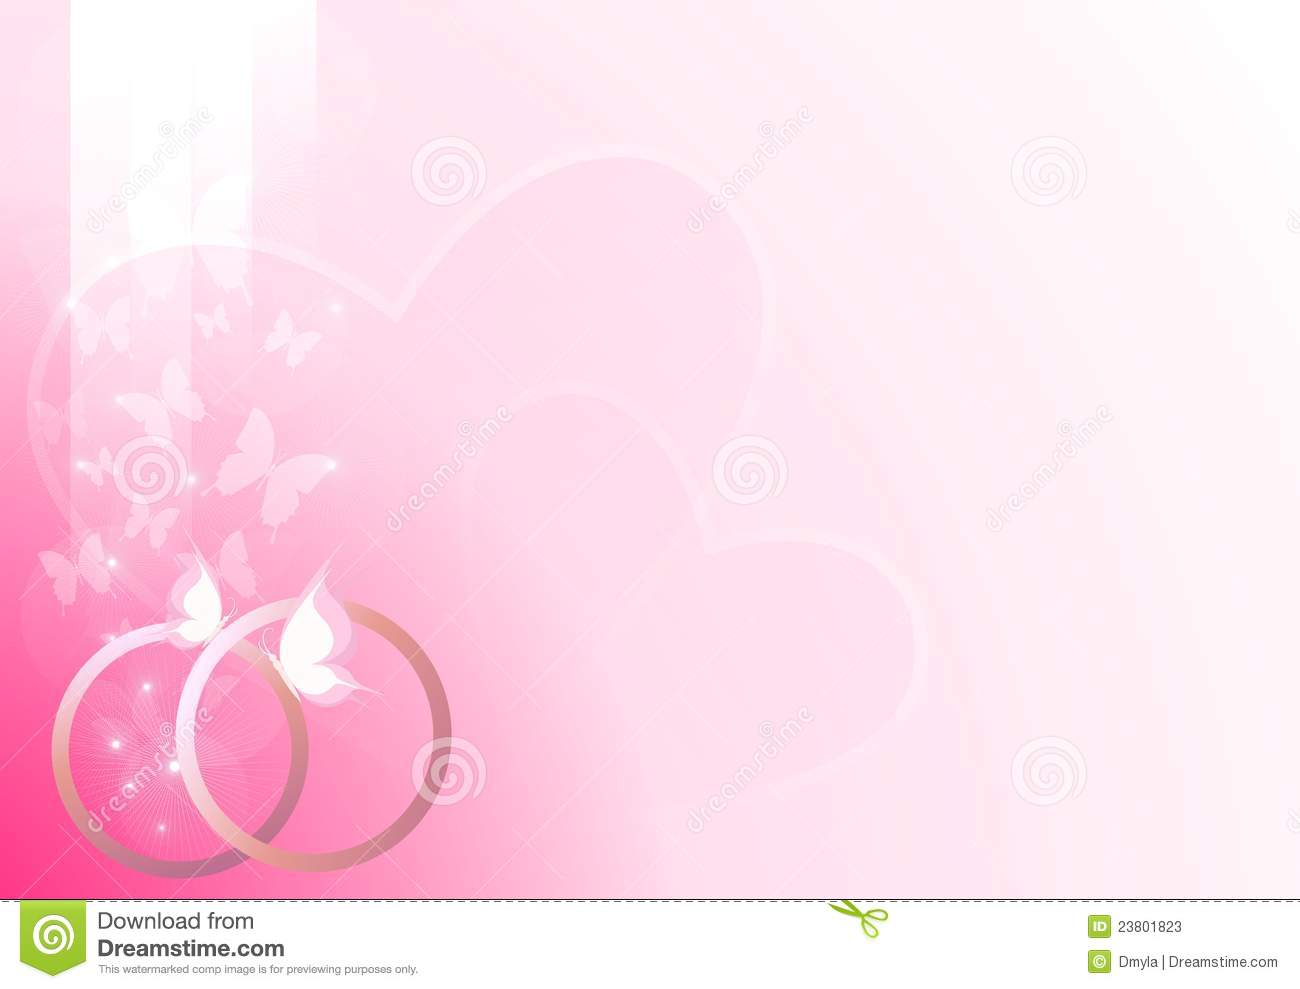 Ring Ceremony Hd Wallpaper Pink Wedding Background Stock Vector Illustration Of